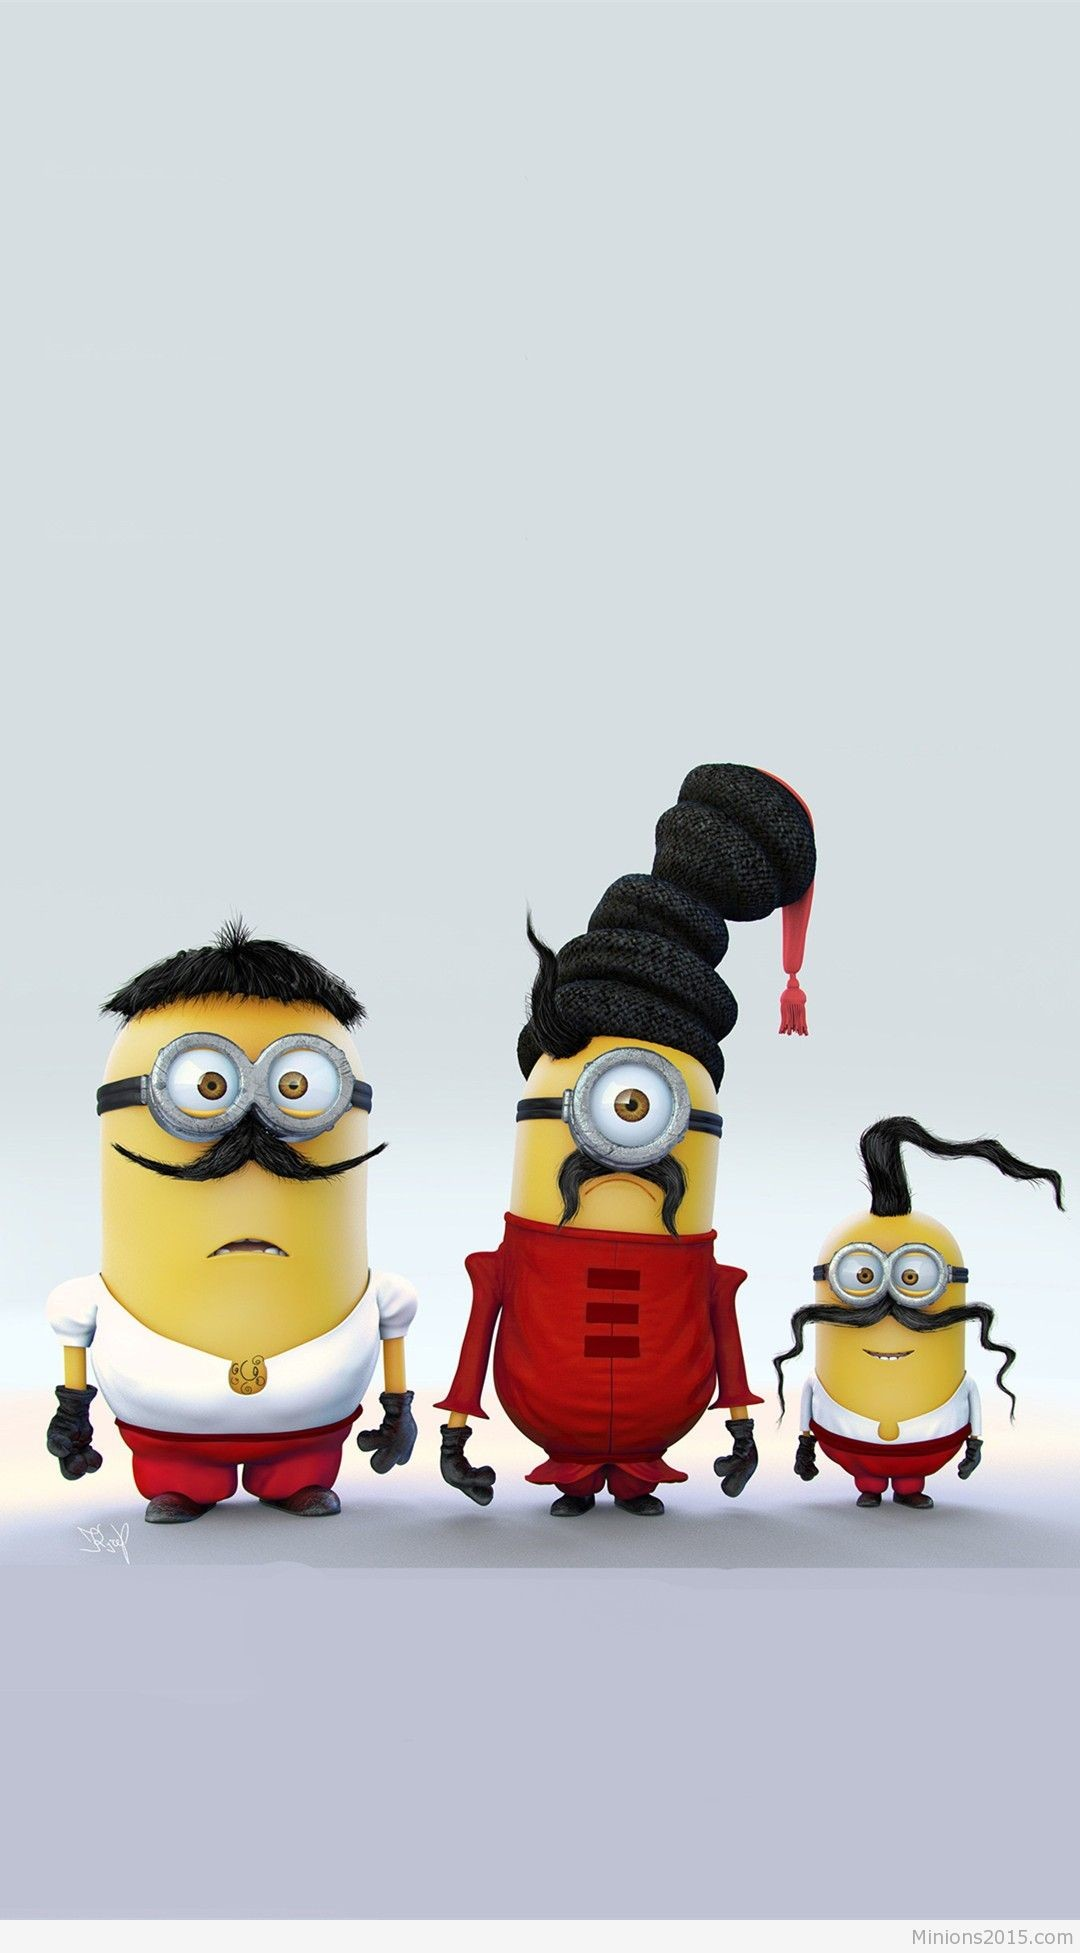 1080x1953 minions with mustache family iphone 6 plus wallpaper - hd 2014 halloween  despicable me-f13952